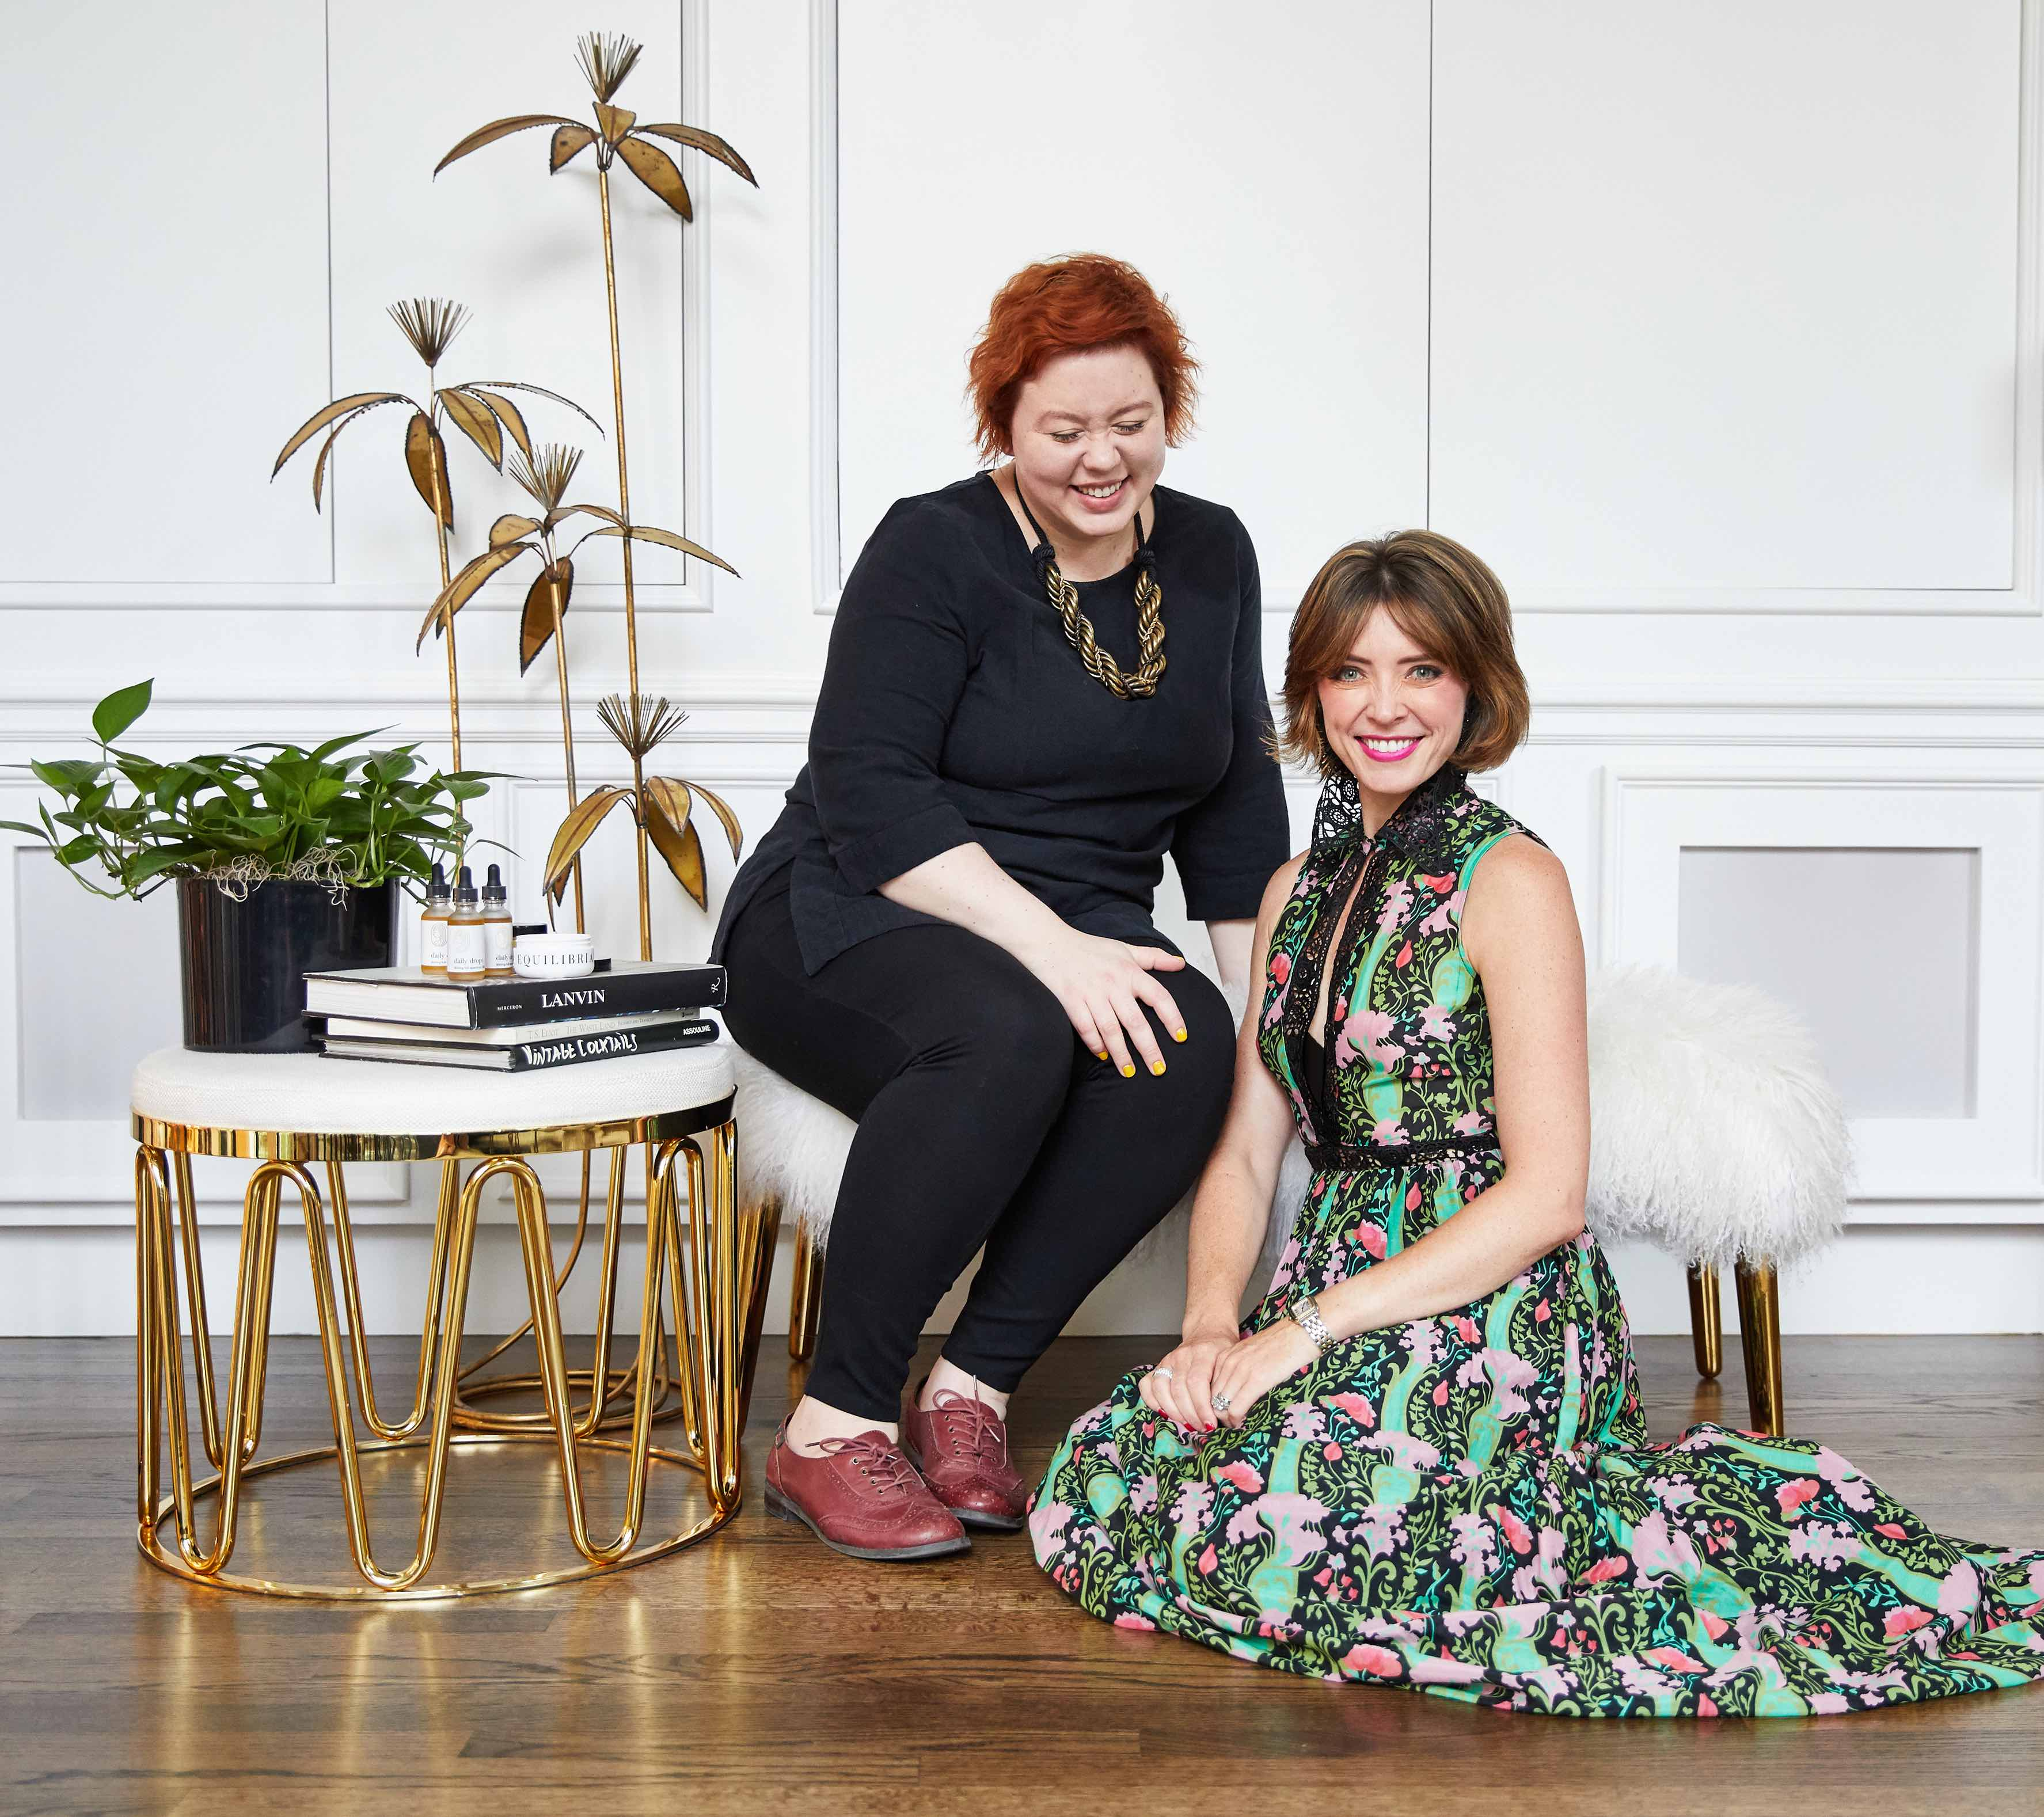 Equilibria co-founders Marcy Capron Vermillion and Coco Meers